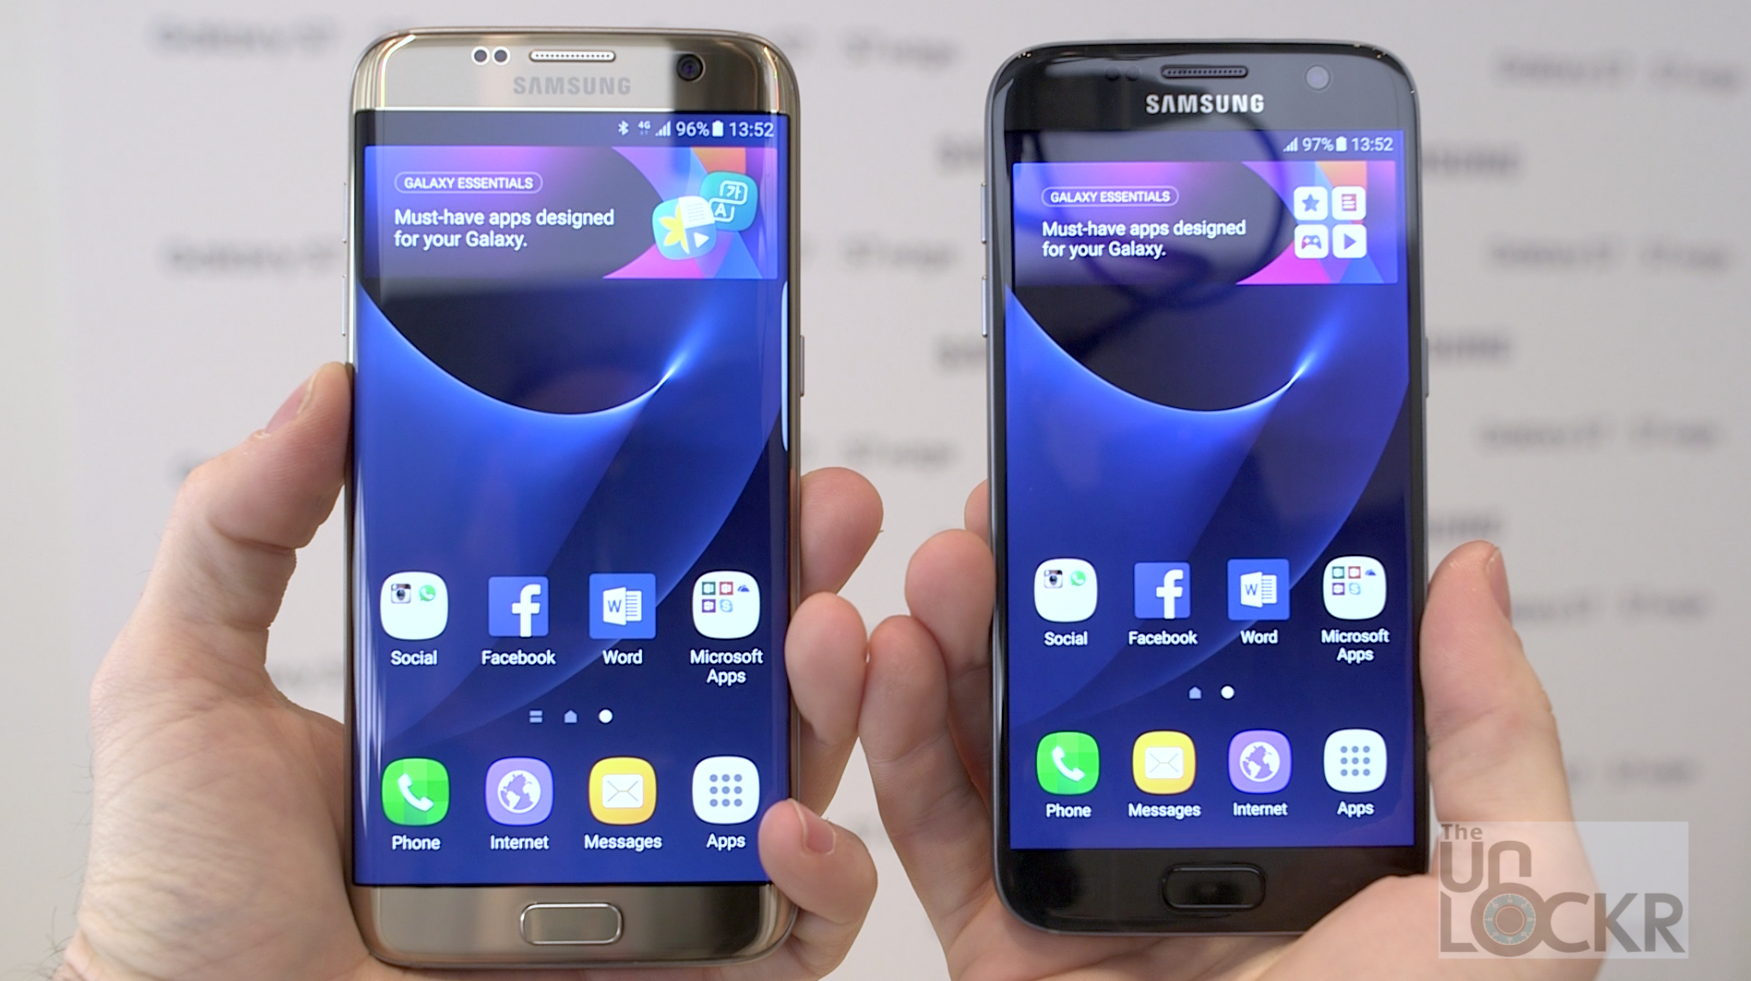 Samsung Galaxy S7 & S7 Edge Hands-On (Video)